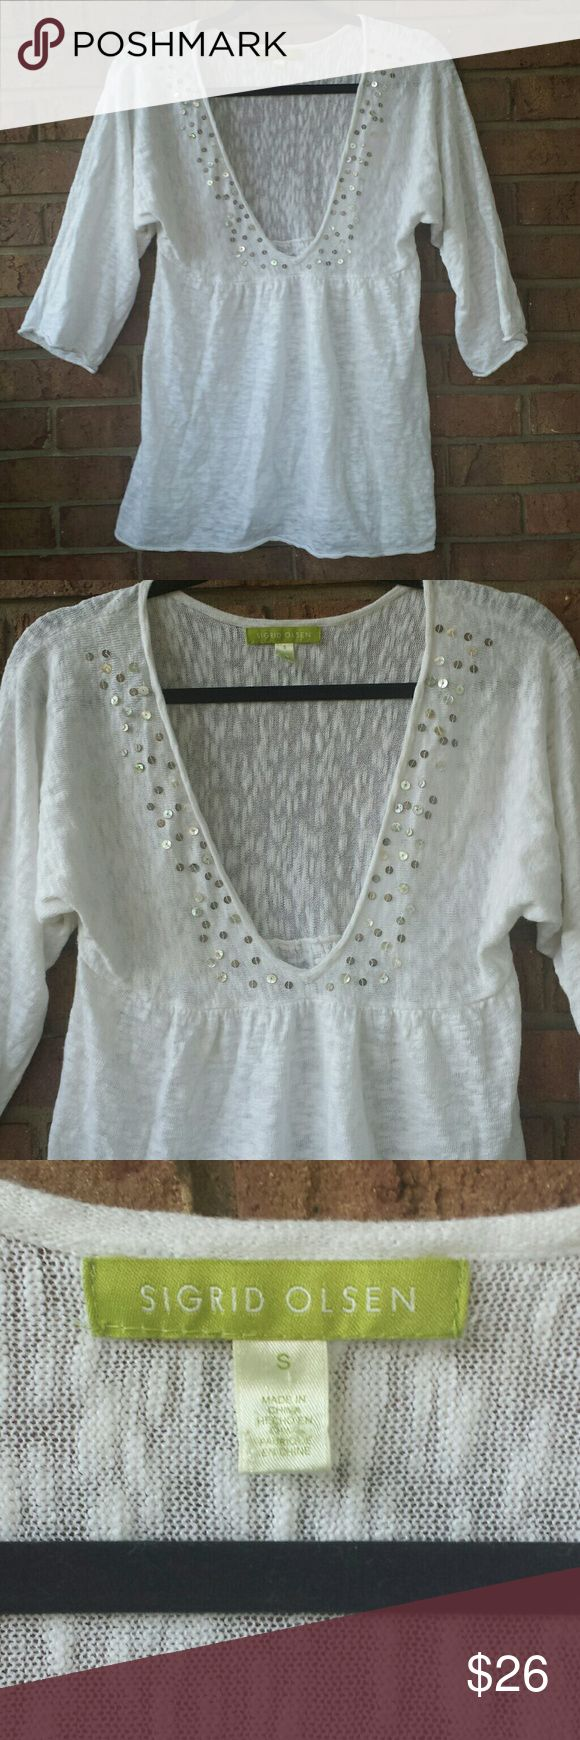 """Sigrid Olsen Chic White Tunic Top Coverup Sigrid Olsen White Tunic Top Coverup. Signature white sequin trim tunic top coverup. Approx: 17"""" armpit to armpit, 27"""" shoulder to hem. Light and airy. Utterly chic coverup for the pool or beach! Sigrid Olsen Swim Coverups"""